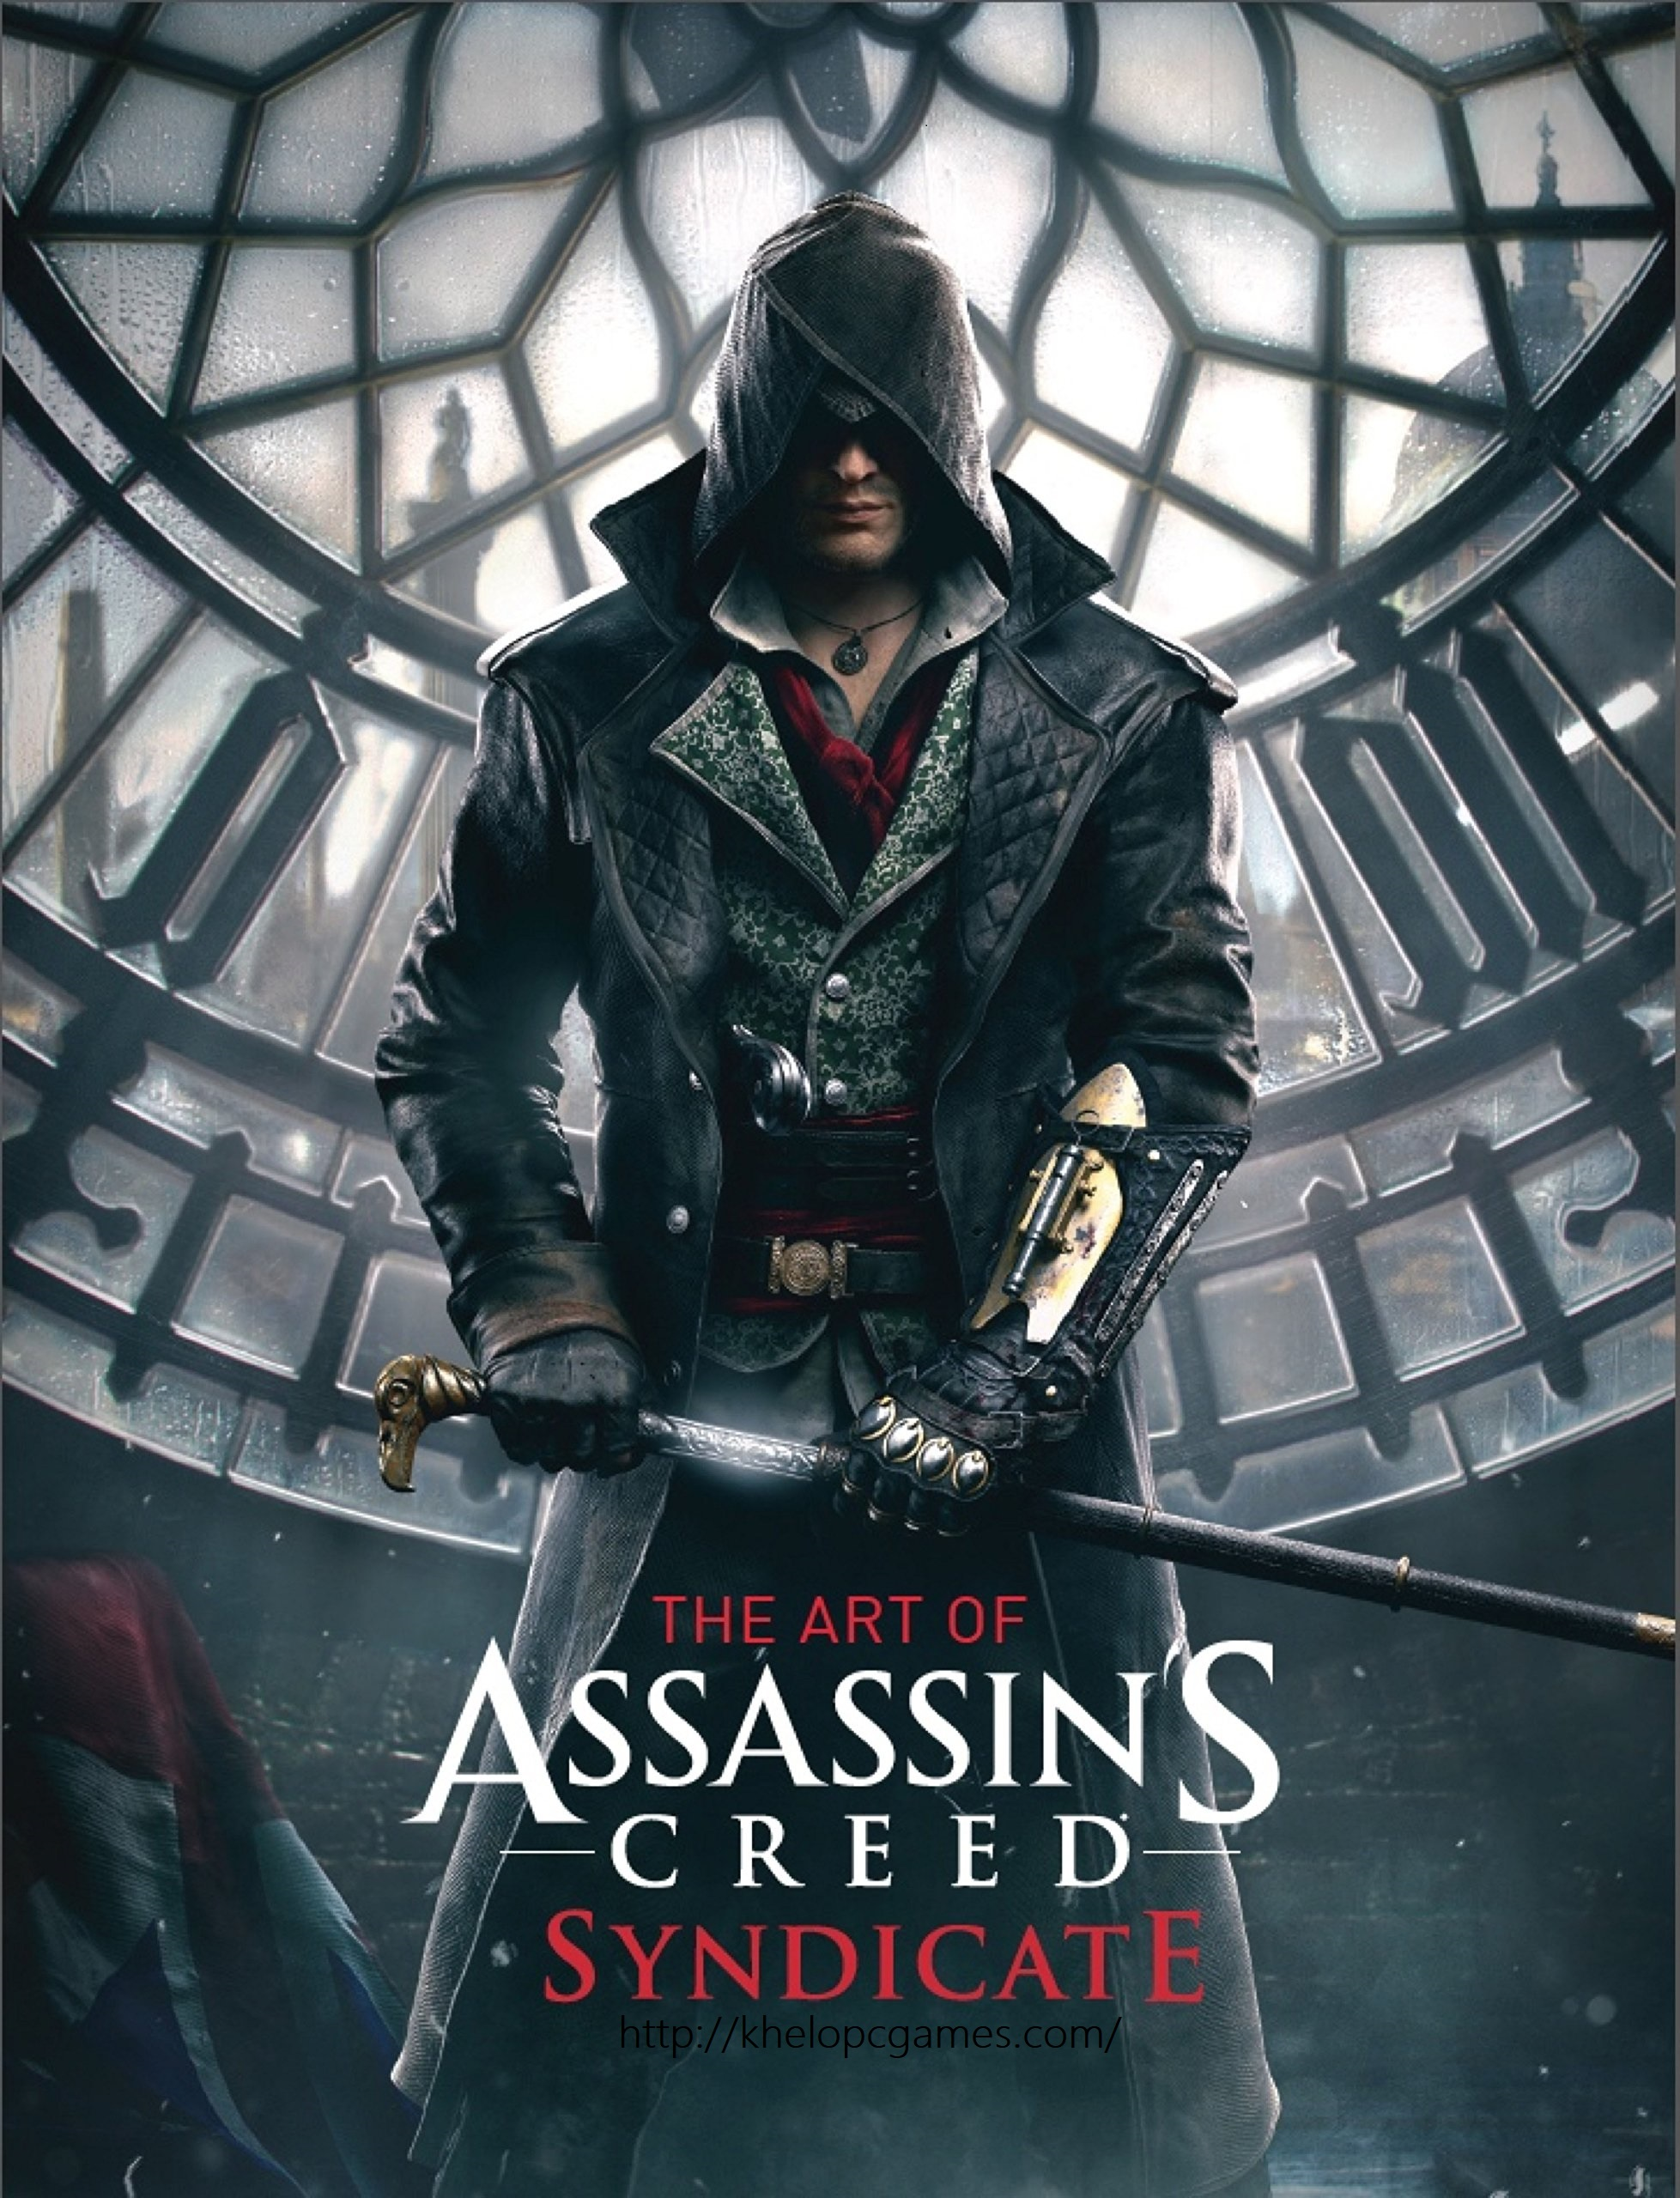 Assassin's Creed Syndicate Free Download Full Version Pc Game Setup (v1.5.1 & ALL DLC)